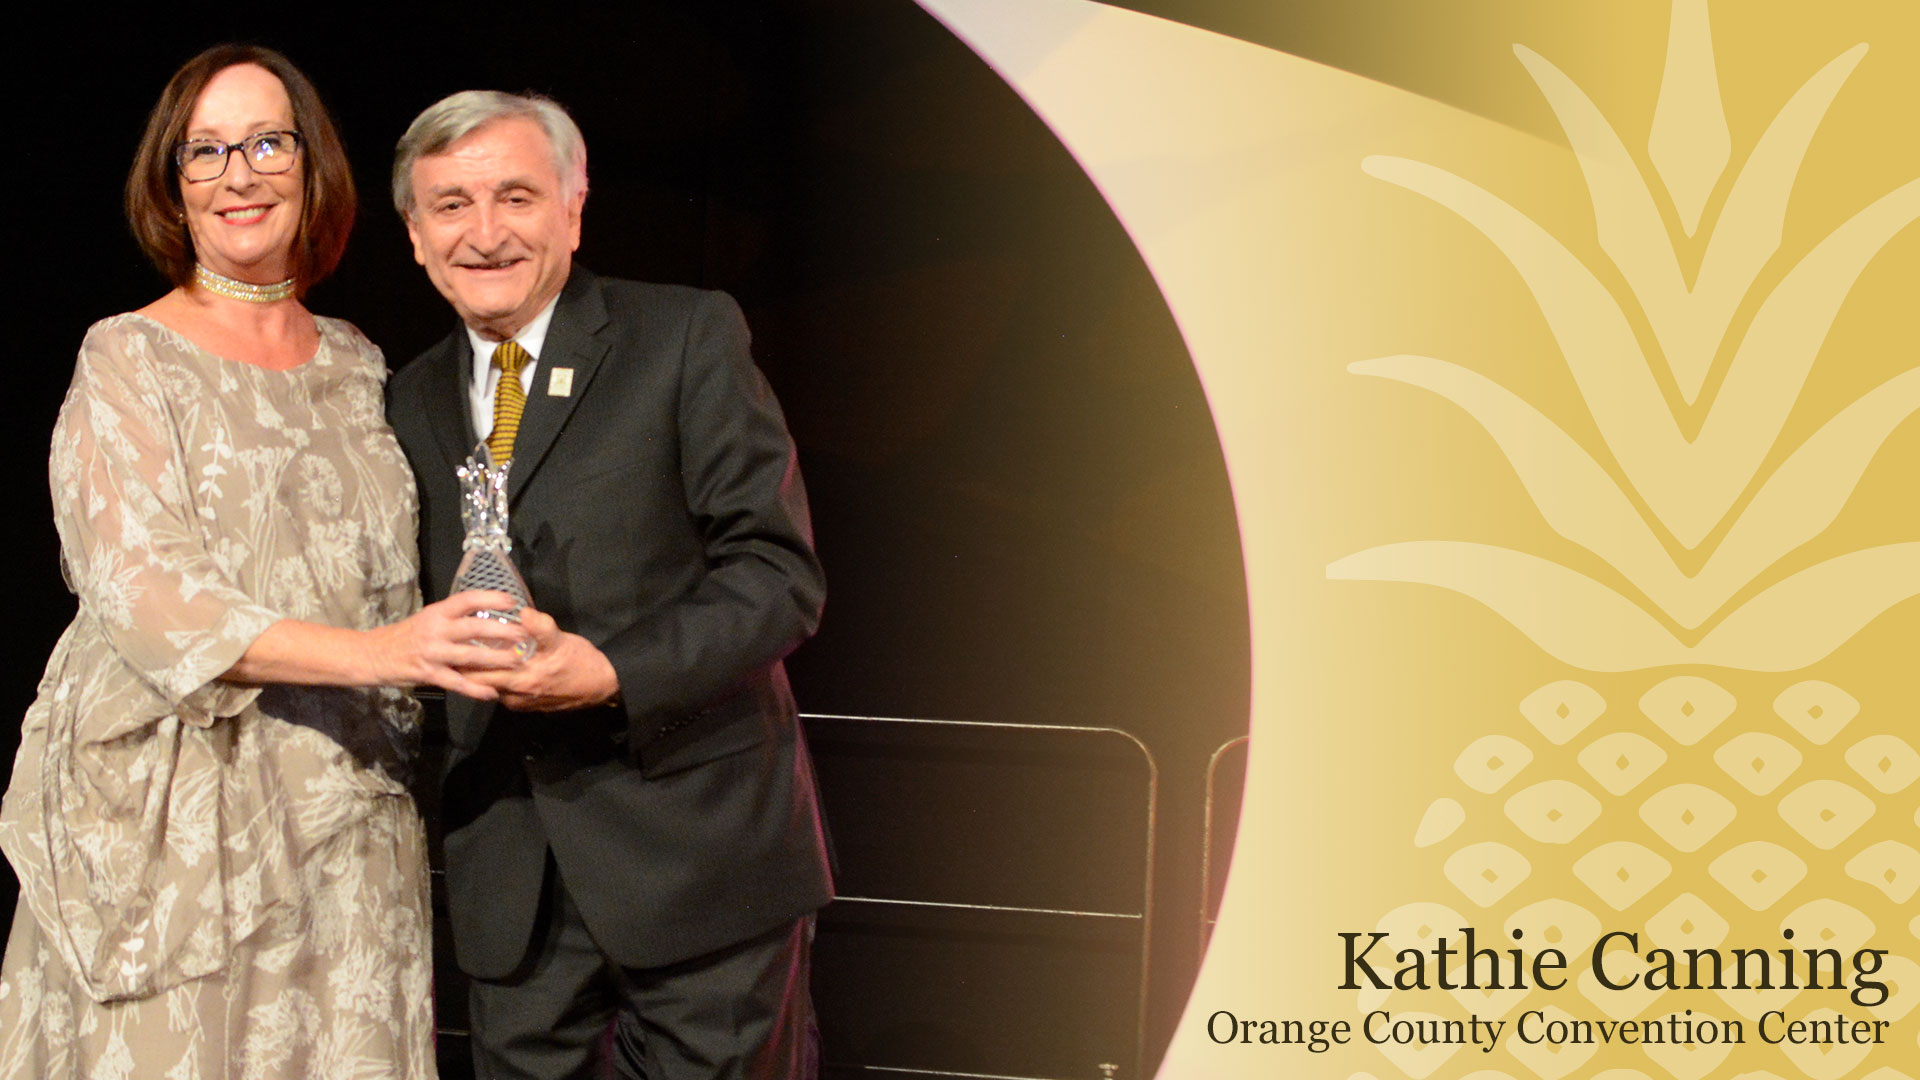 Kathie Canning, Executive Director of the Orange County Convention Center was inducted into the Central Florida Hospitality Hall of Fame